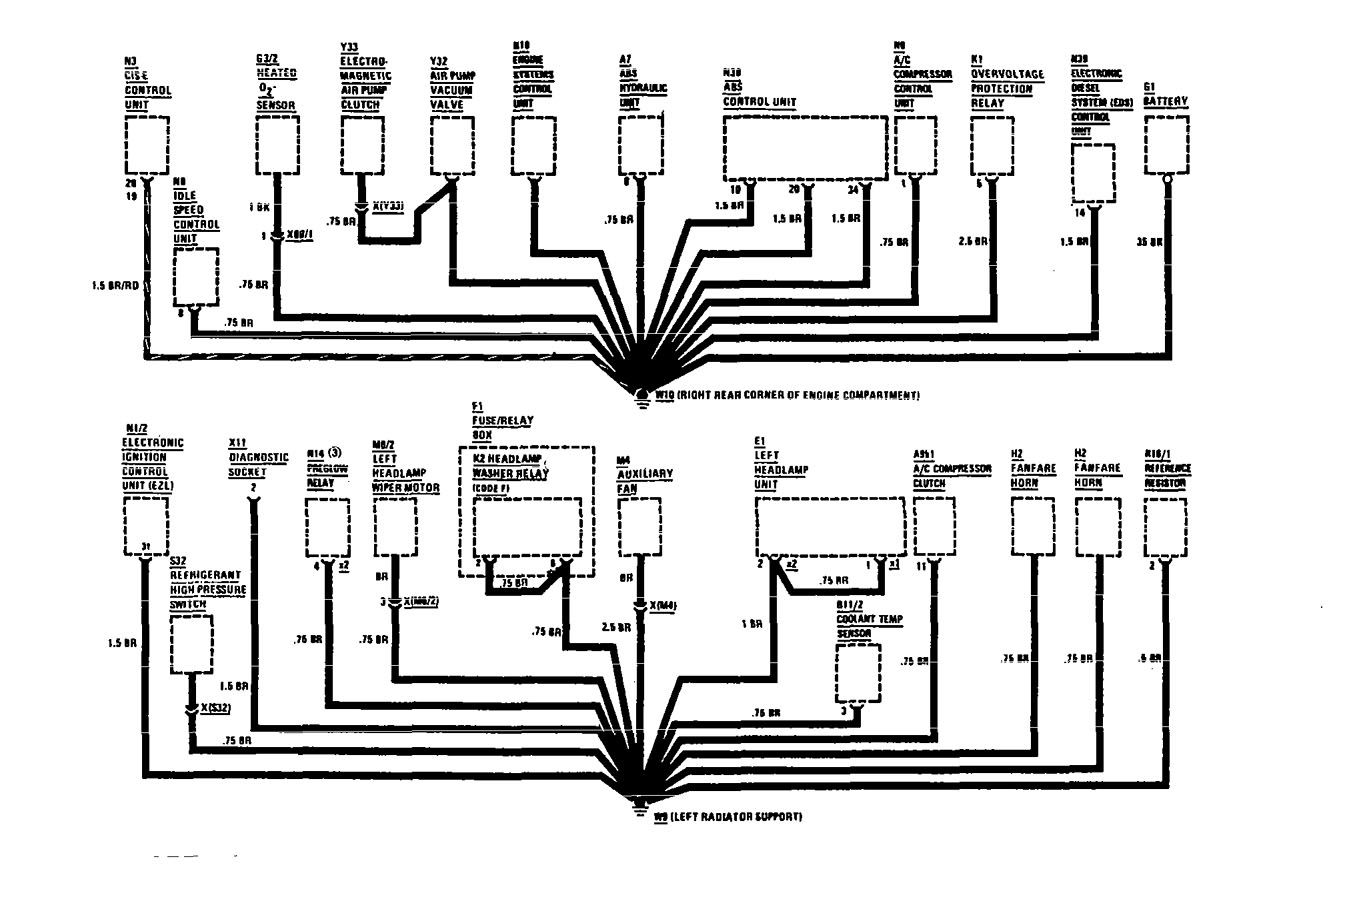 mercedes-benz 560sel  1991  - wiring diagrams